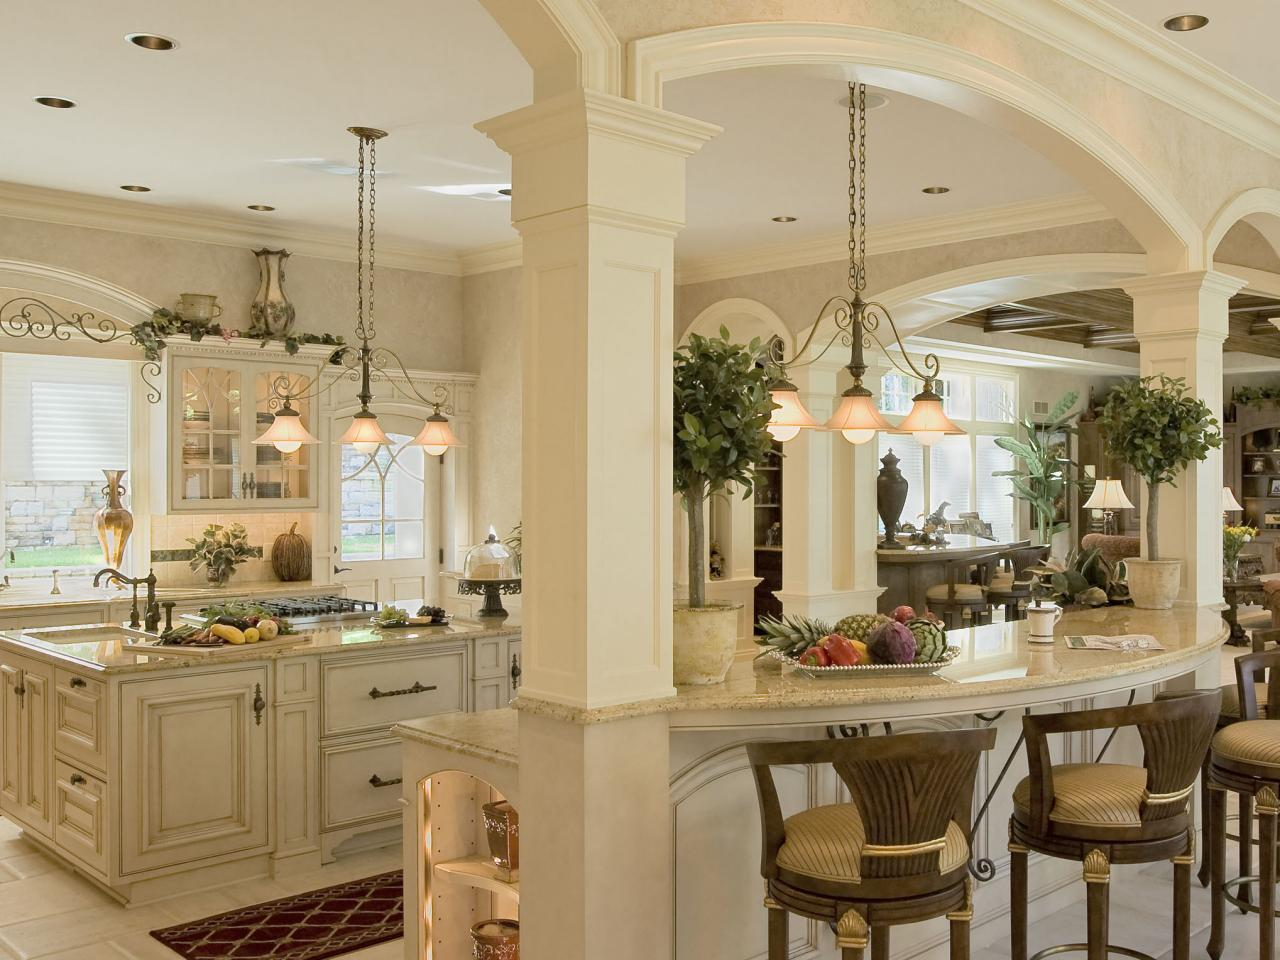 classic kitchen design pictures 10 inspiration enhancedhomes org classic kitchen design pictures 10 inspiration